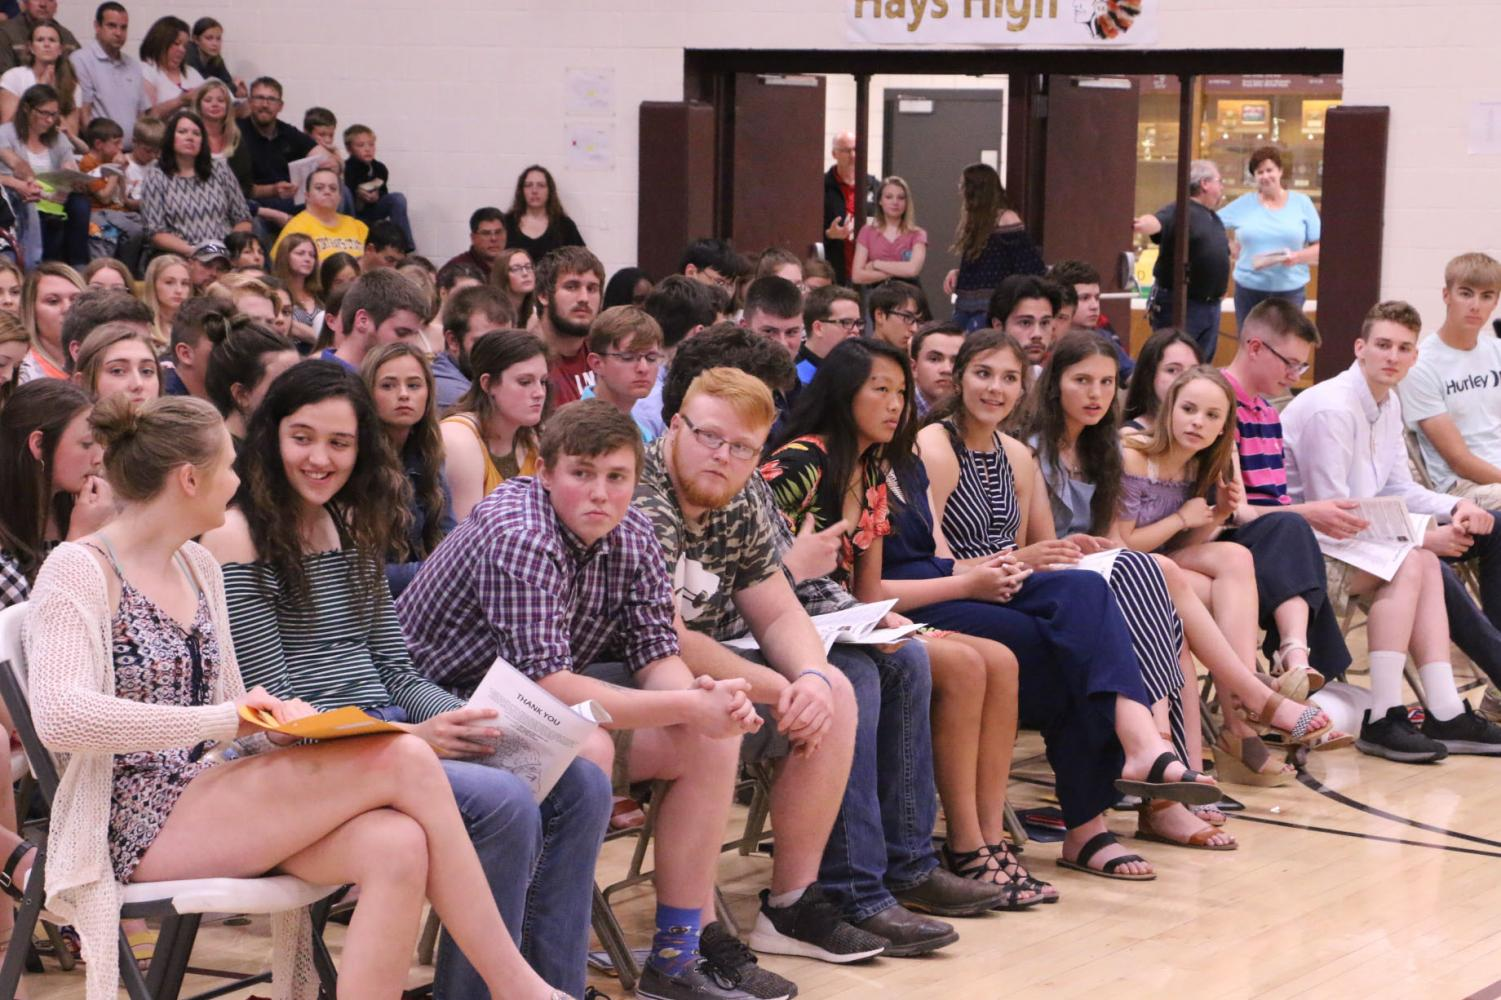 On May 6 at 6:30 pm in gym A students received and were recognized for scholarships, sports awards, academic achievements, etc. Students that came to awards night gave the announcer a card of their achievements, to be read off.